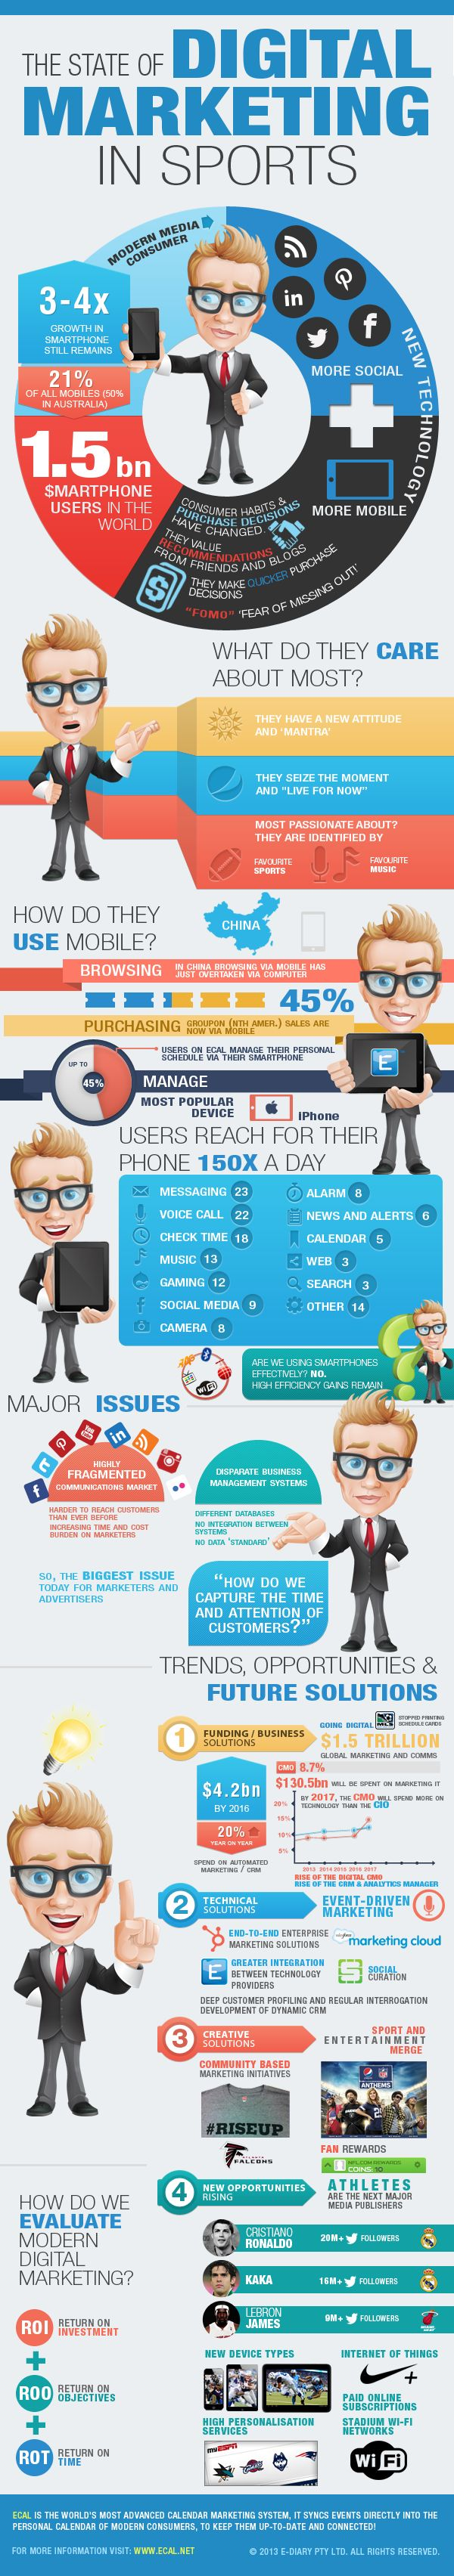 Alongside social, other modern media such as mobile, blogs, digital video and gaming are also playing pivotal roles, and this infographic reviews digital marketing in sports.